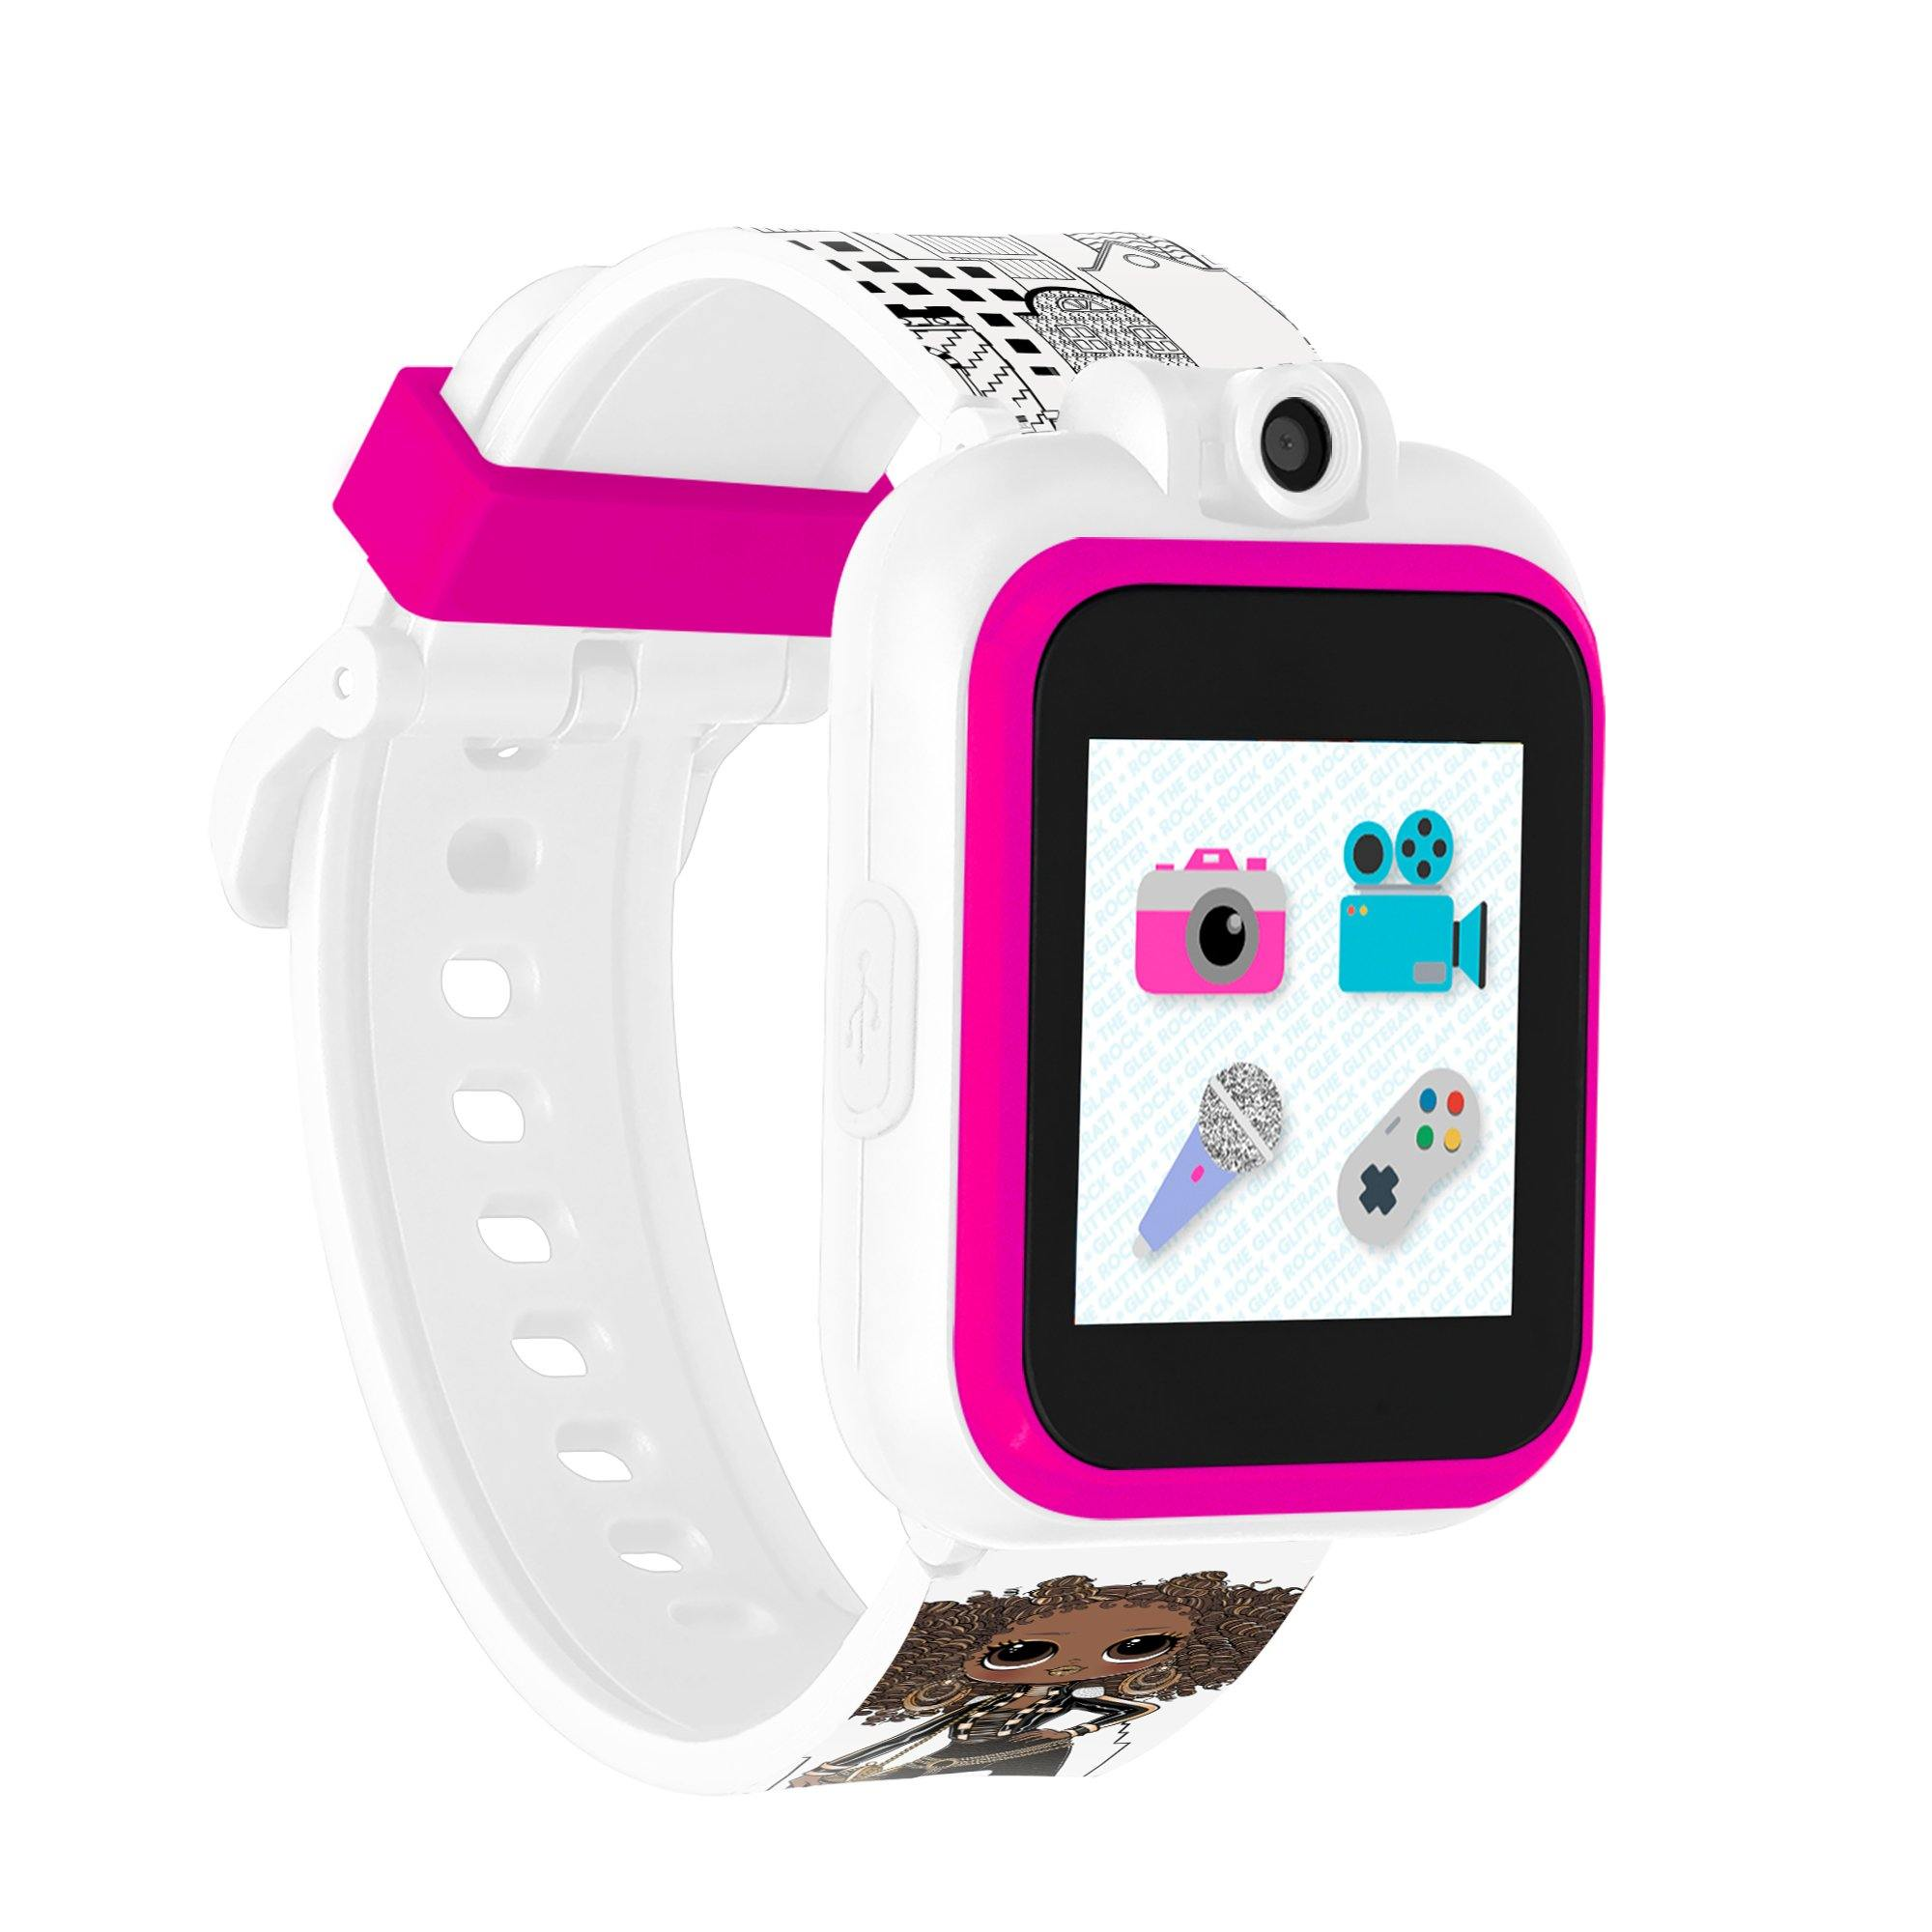 LOL Surprise! O.M.G. PlayZoom: Fuchsia / White Royal Bee Print